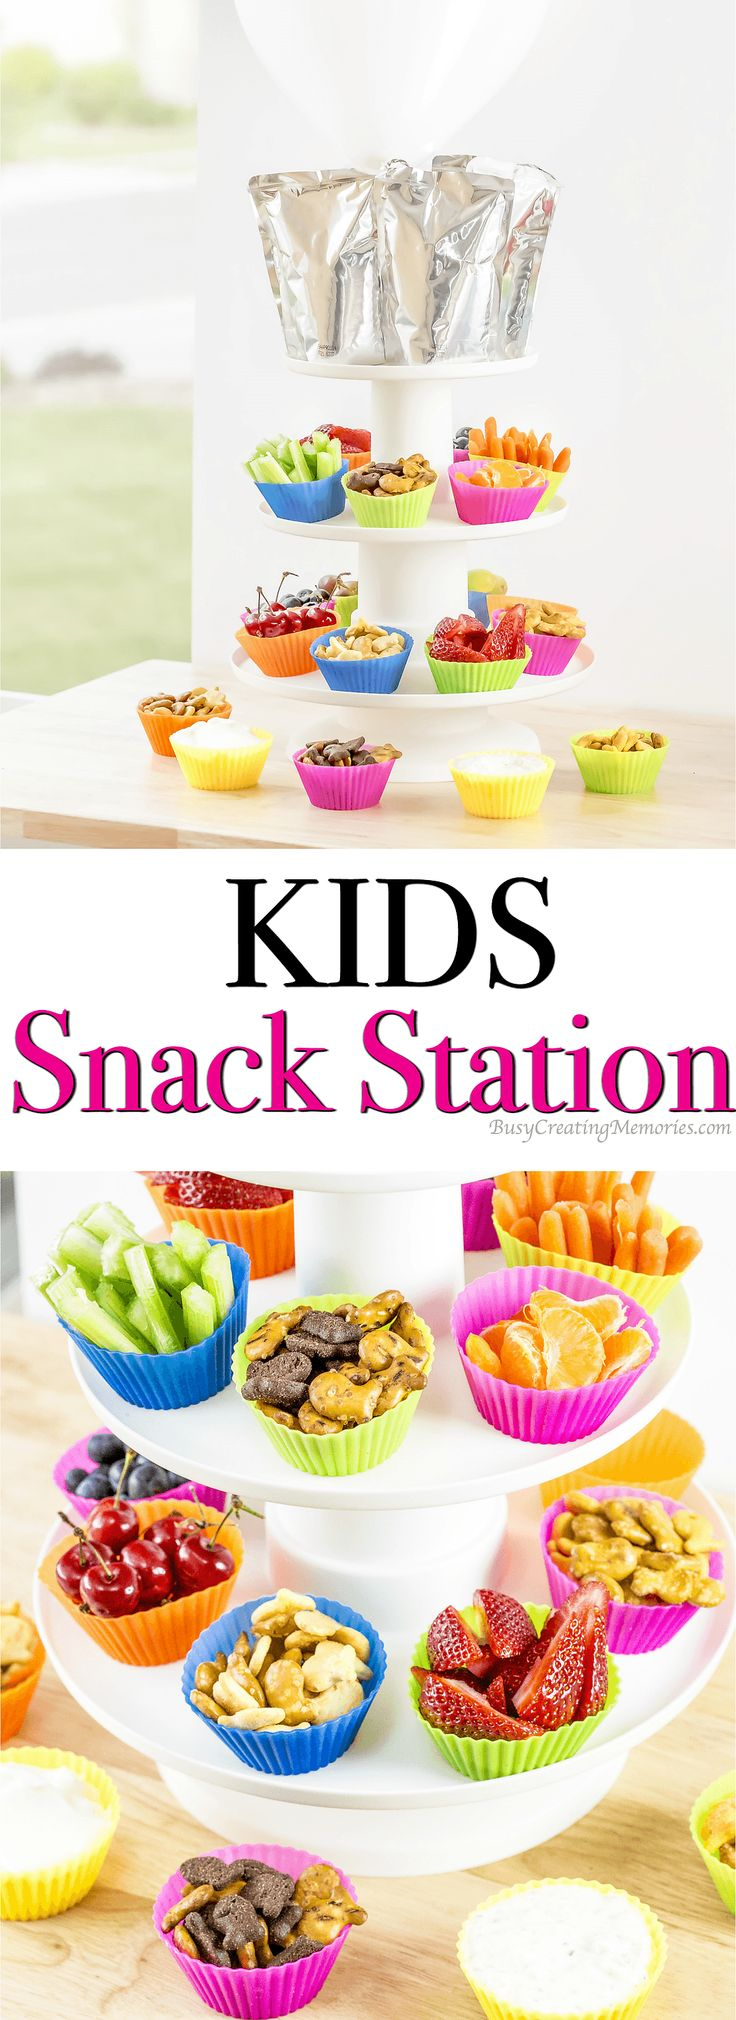 Home snack center - Diy Kids Snack Station Tutorial For Happy Kids All Summer This Easy Kids Snack Station